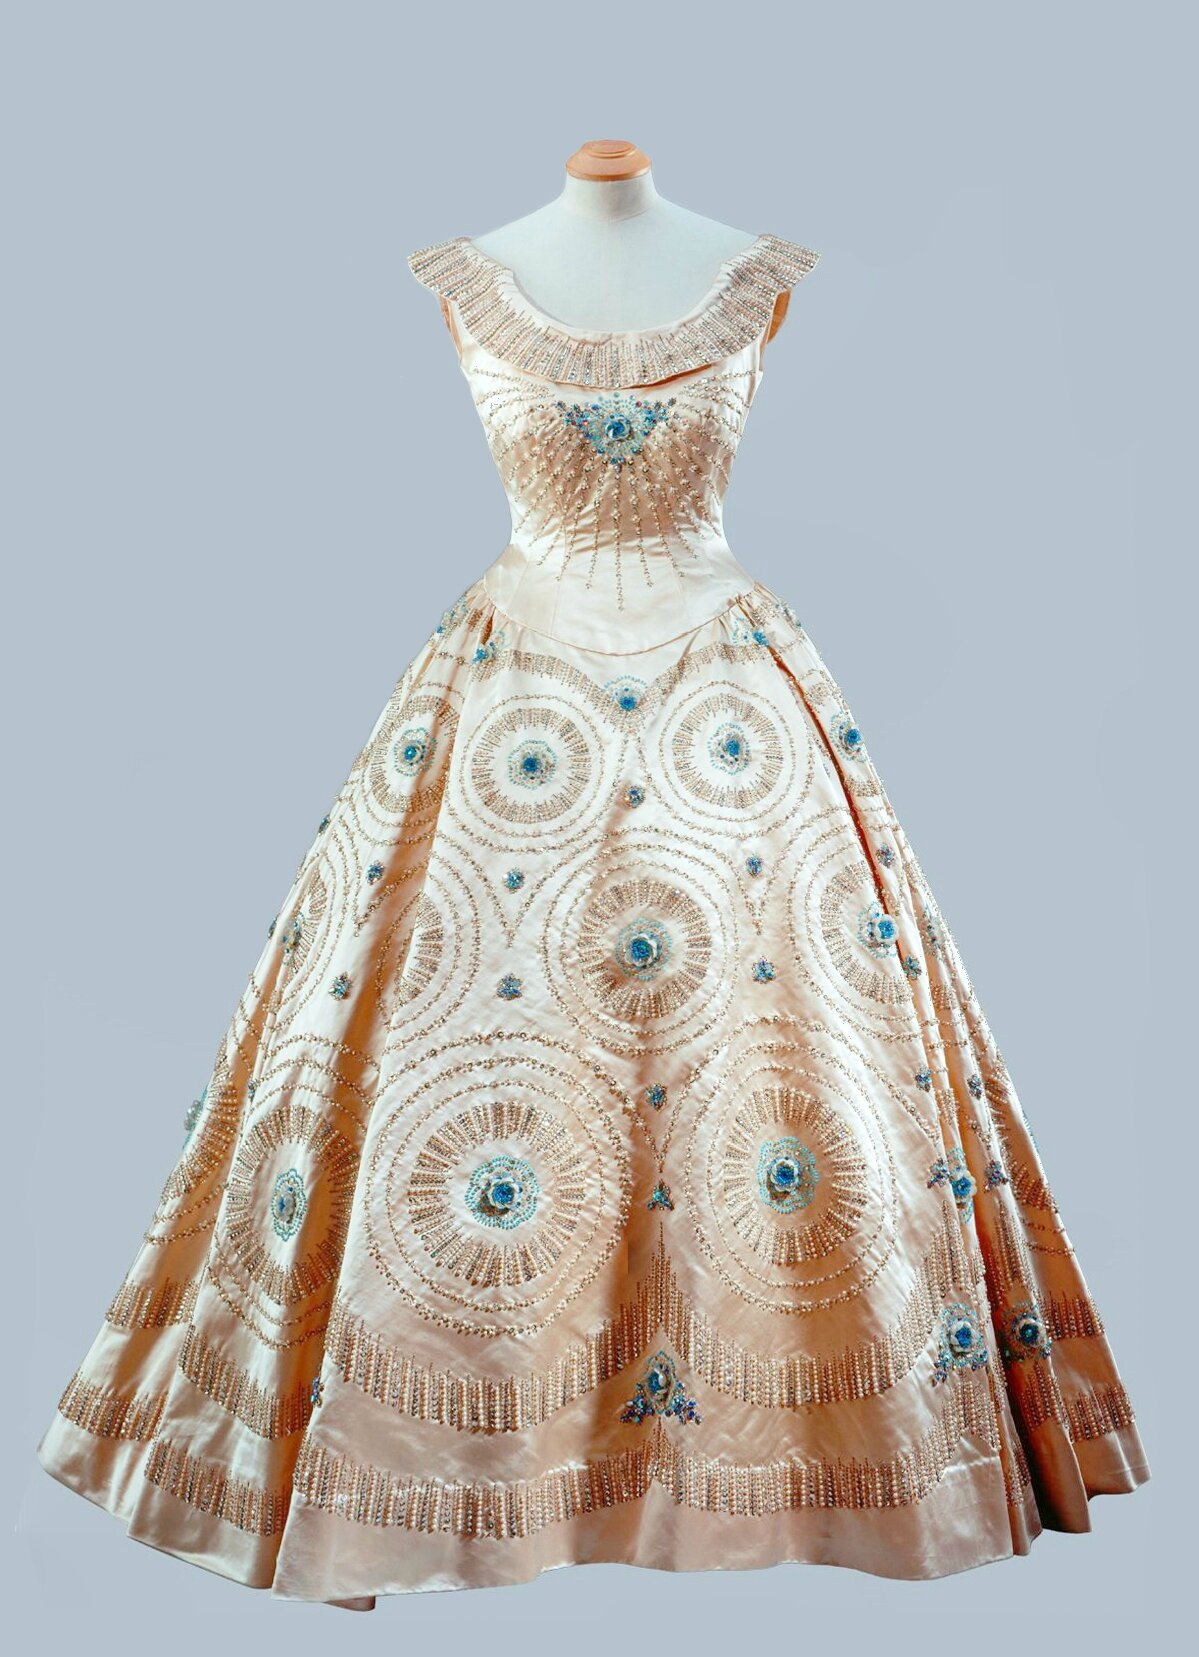 Norman Hartnell, Cream crinoline gown with blue embroidery